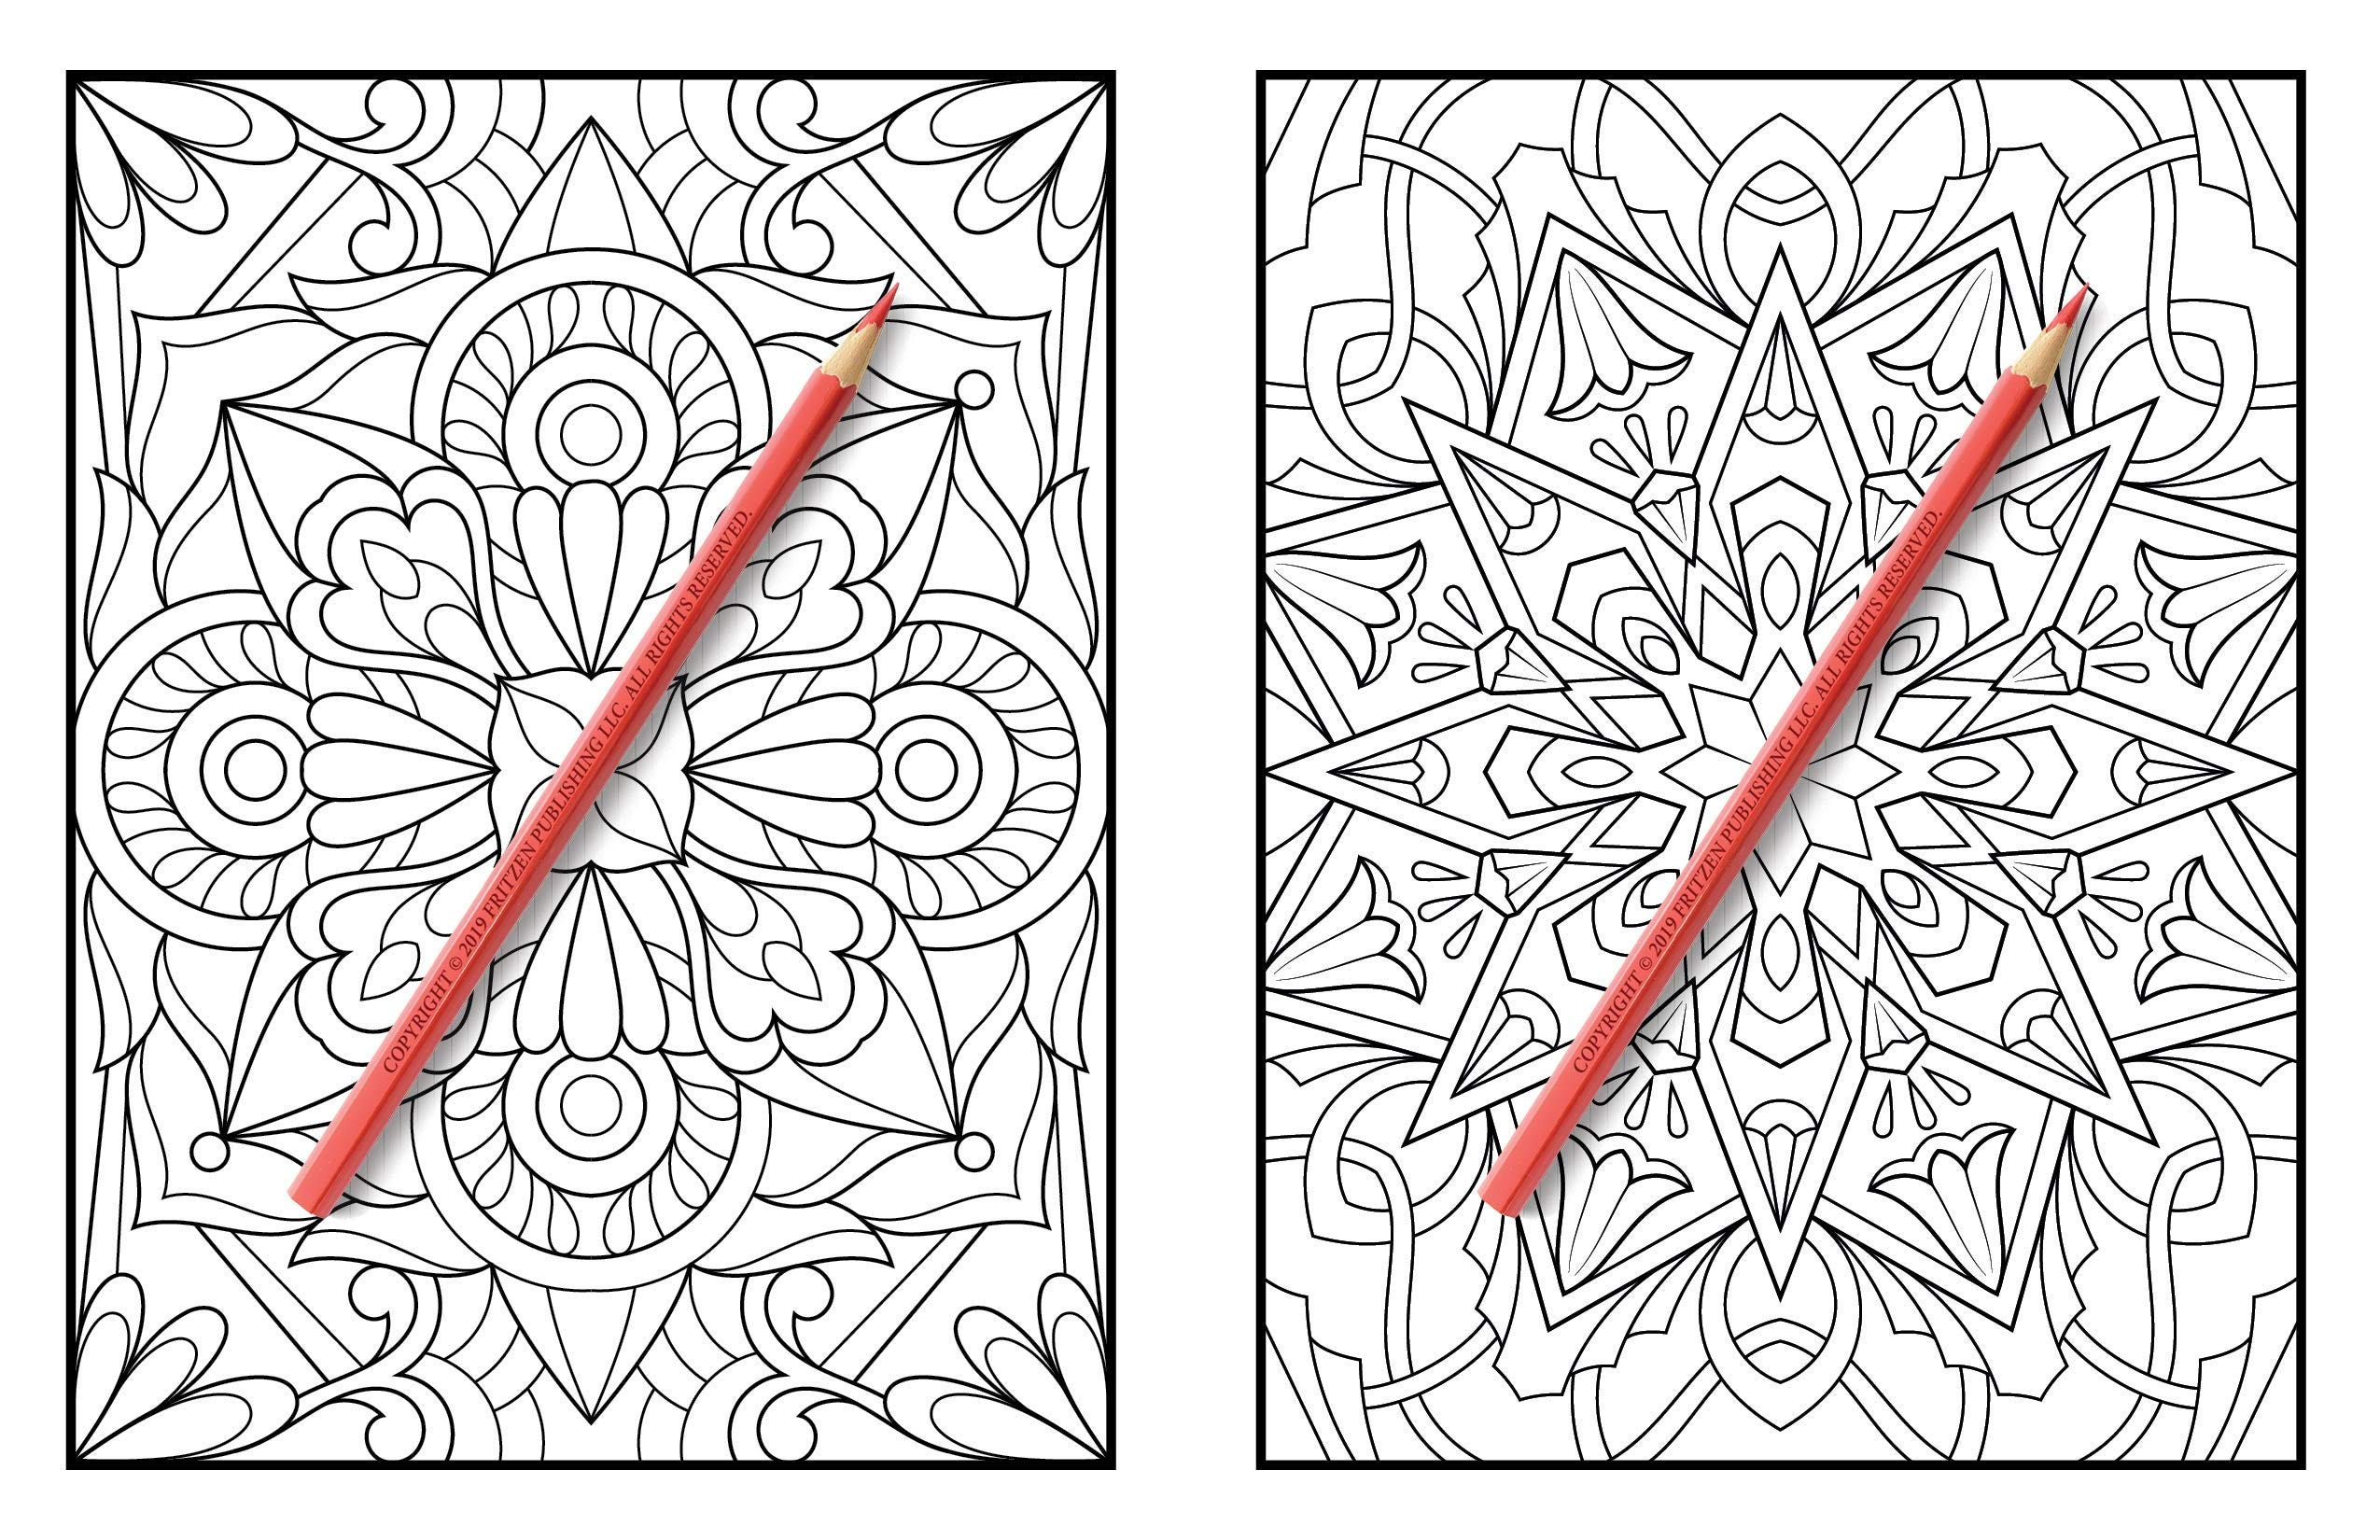 Two patterns in an adult coloring book with red colored pencils lying on top of them.